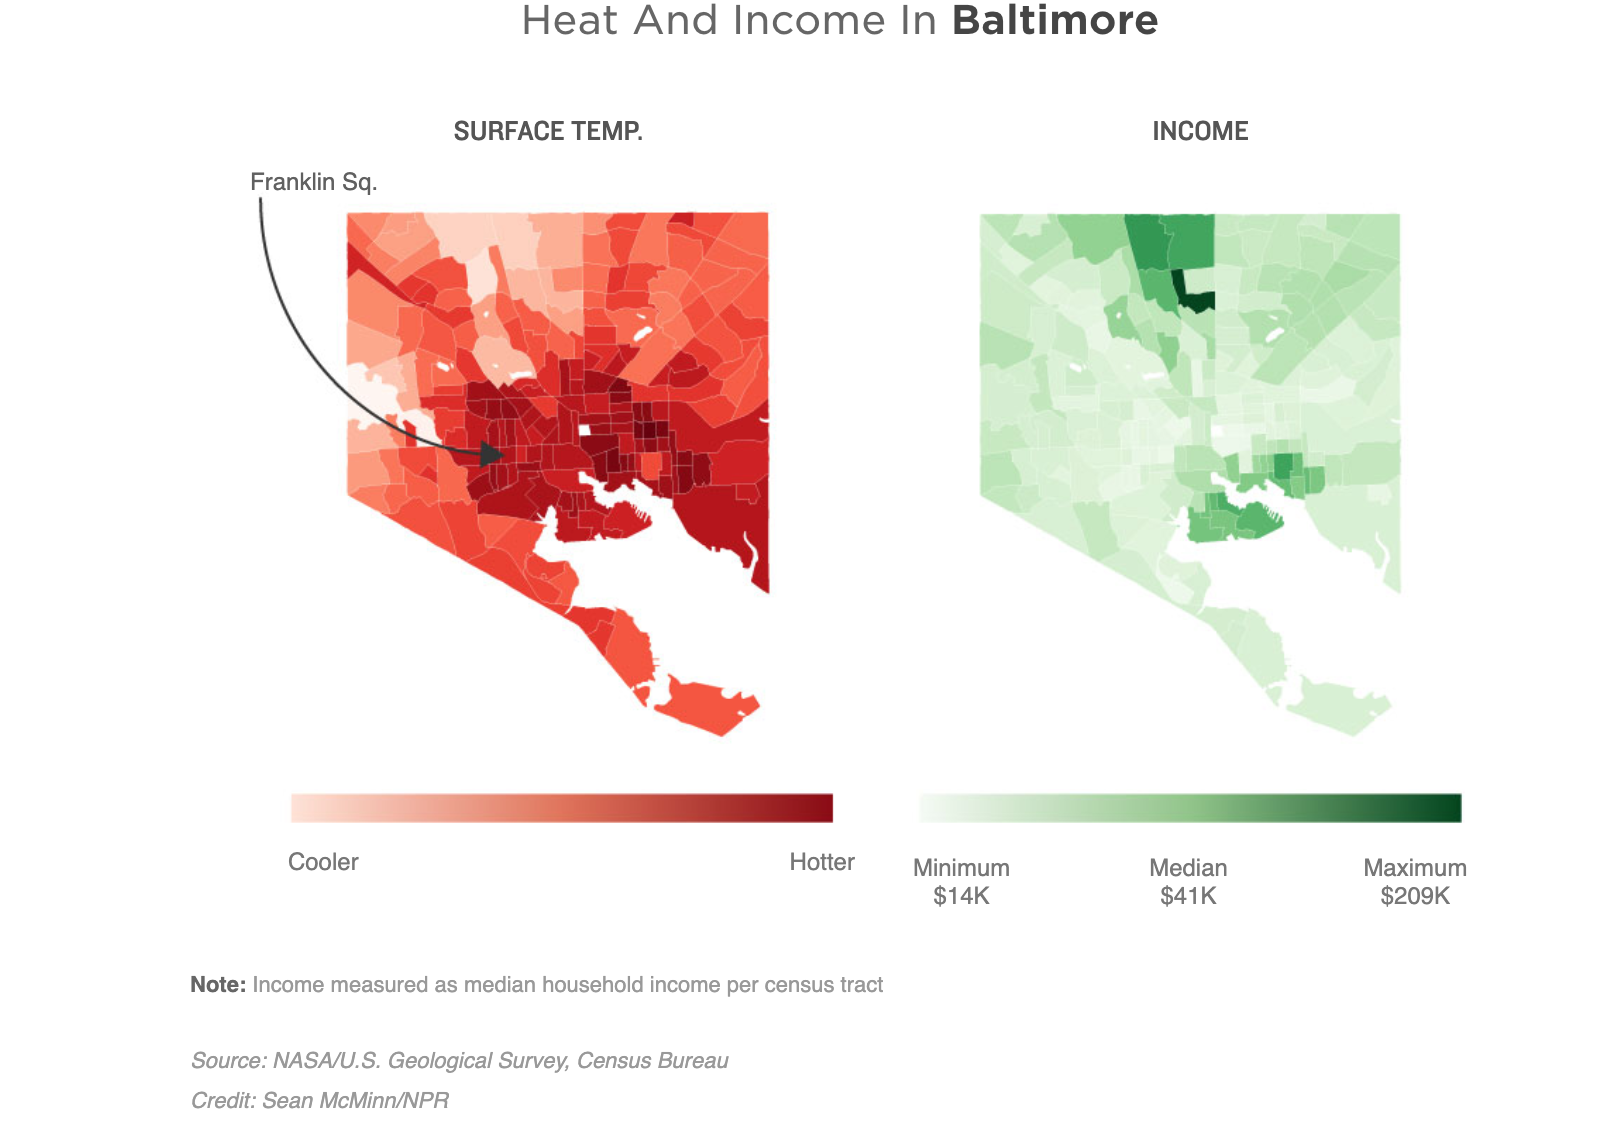 Urban Heat Islands Disproportionately Affect Black Neighborhoods